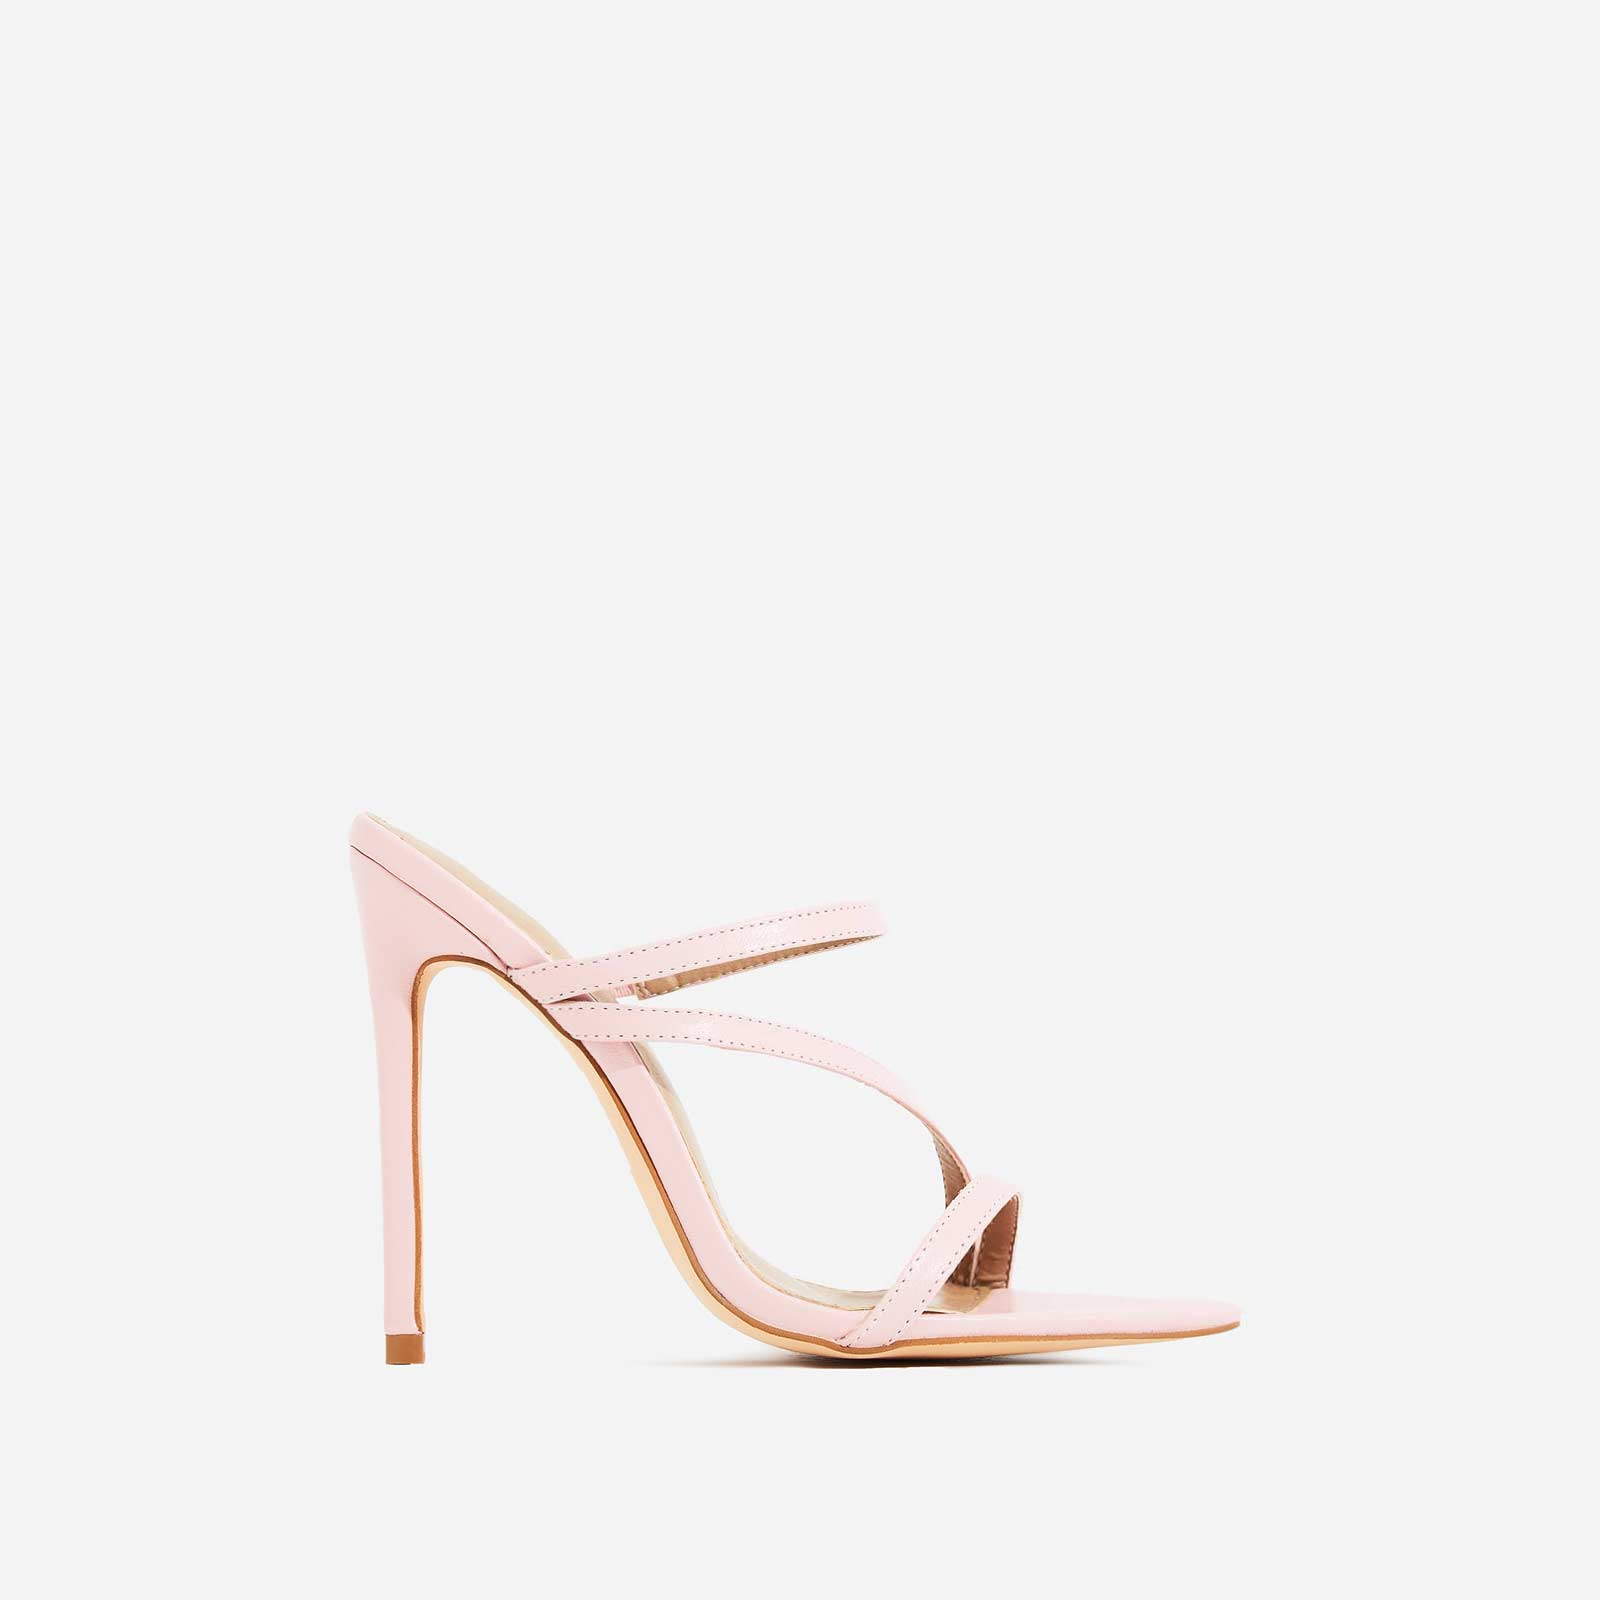 Aria Toe Strap Heel Mule In Light Pink Faux Leather